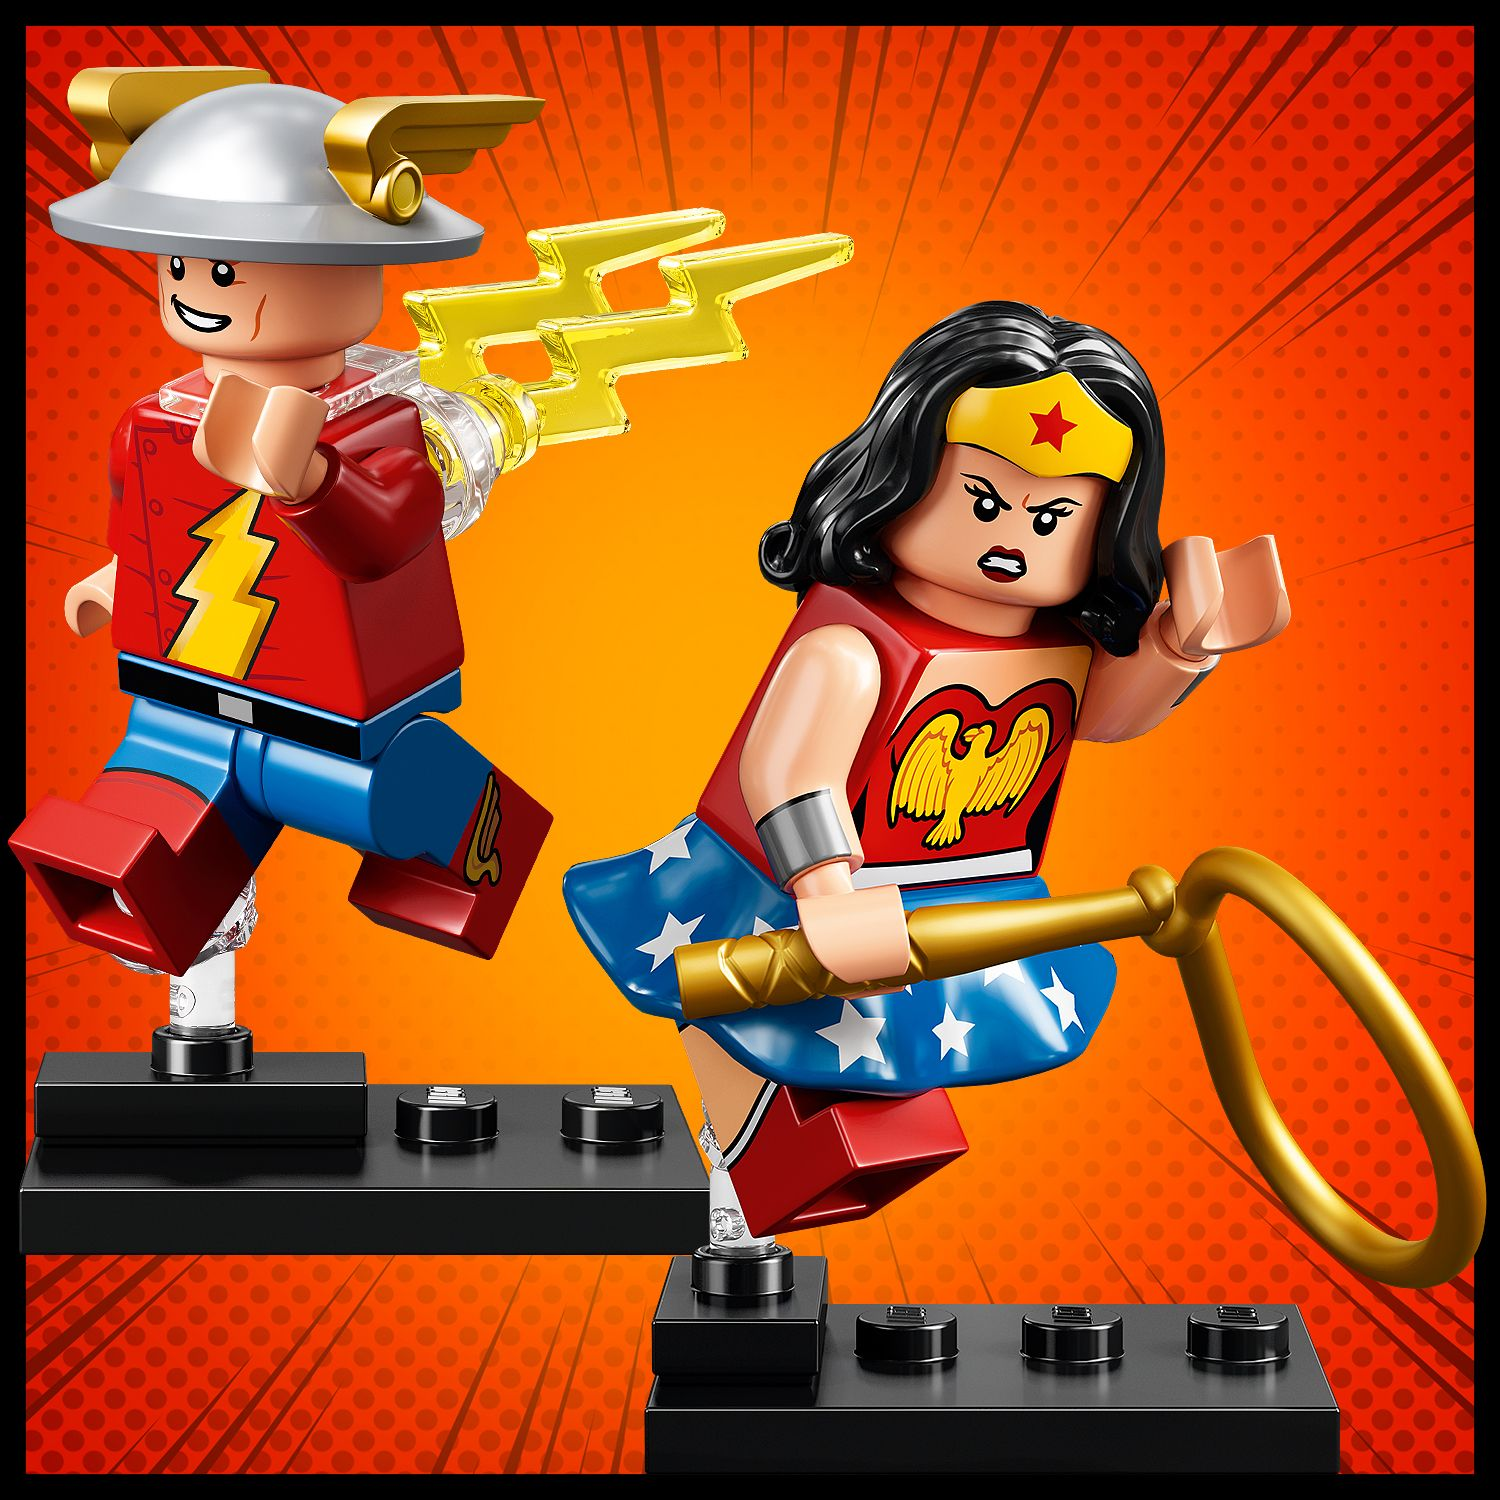 LEGO Collectable Minifigures 71026 LEGO® DC Super Heroes Series - 2 x 30er Box LEGO_71026_alt10.jpg